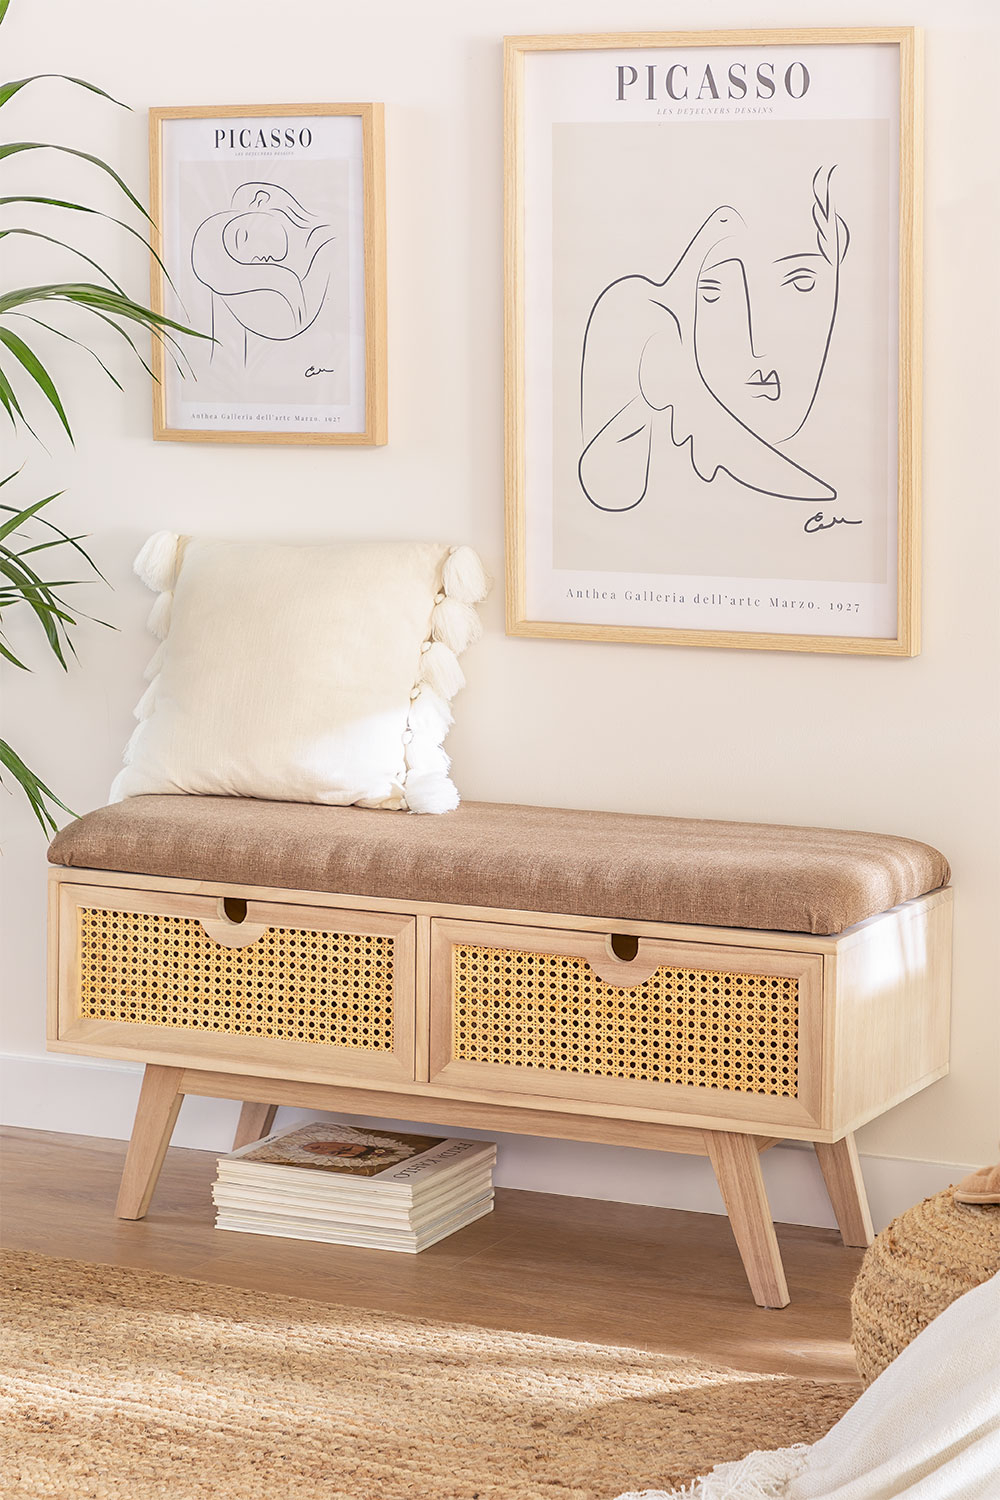 Wooden Bench with 2 Drawers Ralik Style, gallery image 1